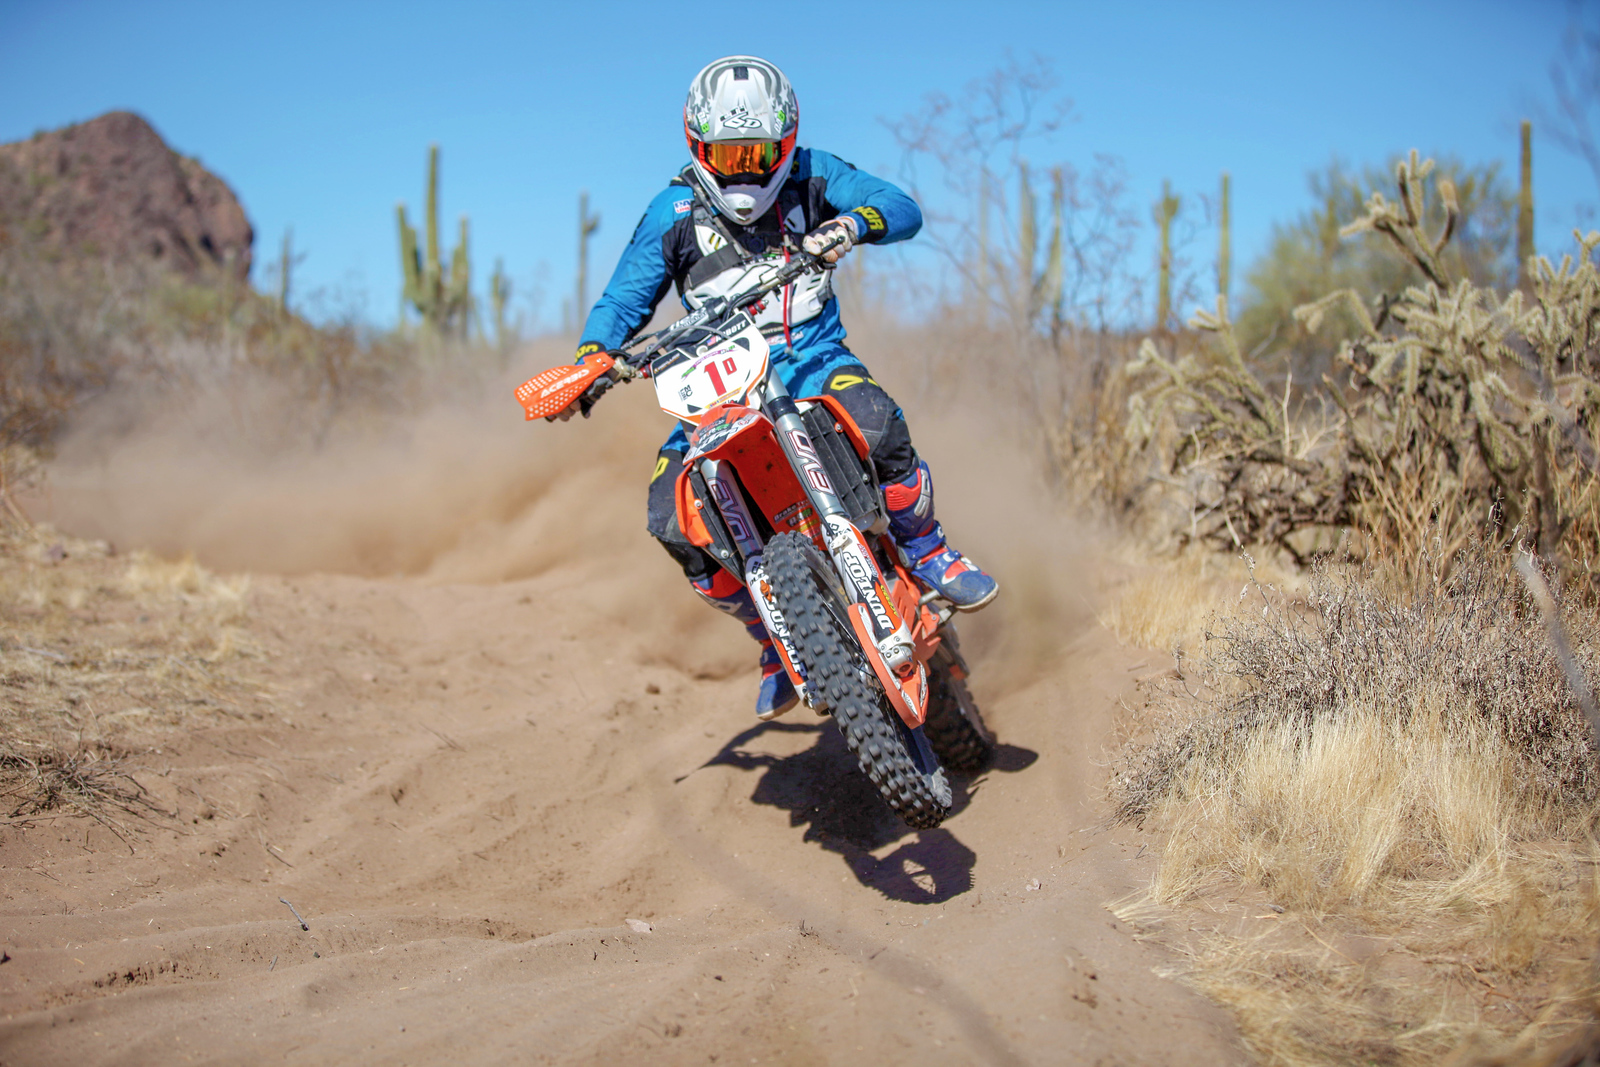 2018 U.S. ISDE Club Team rider Destry Abbott competing at Round One of the 2018 AMA International Six Days Enduro West Qualifier Series in Wickenburg, Ariz. (credit: MJS Motophotos)